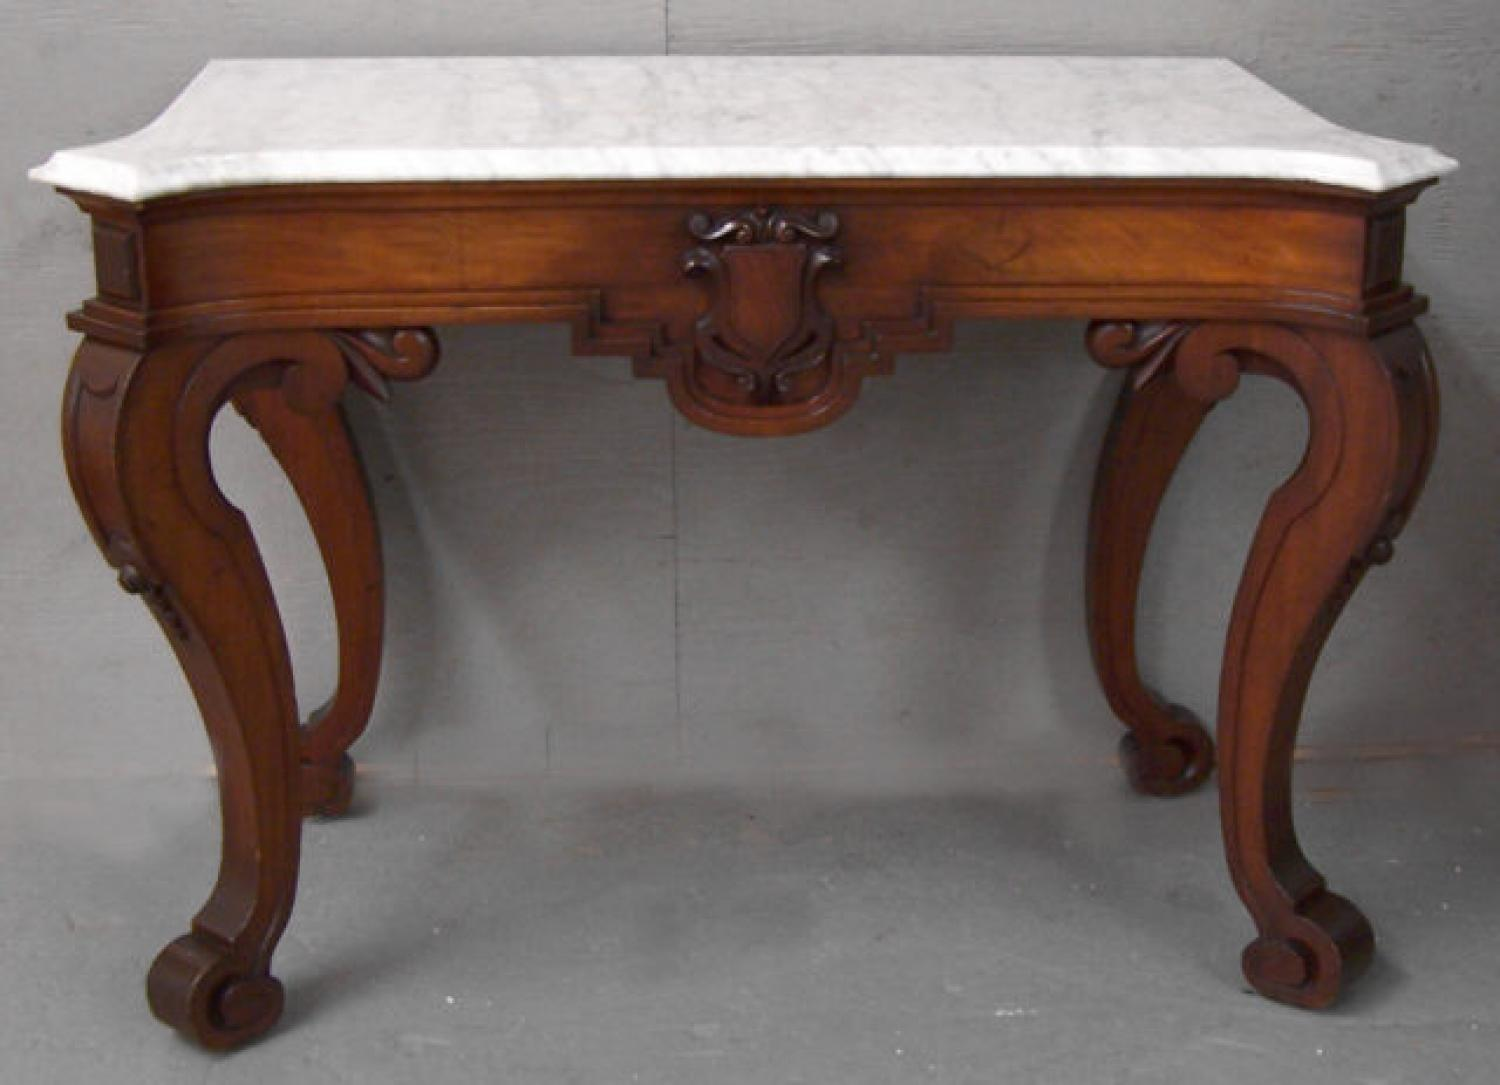 Victorian marble top console table with mahogany base c1860